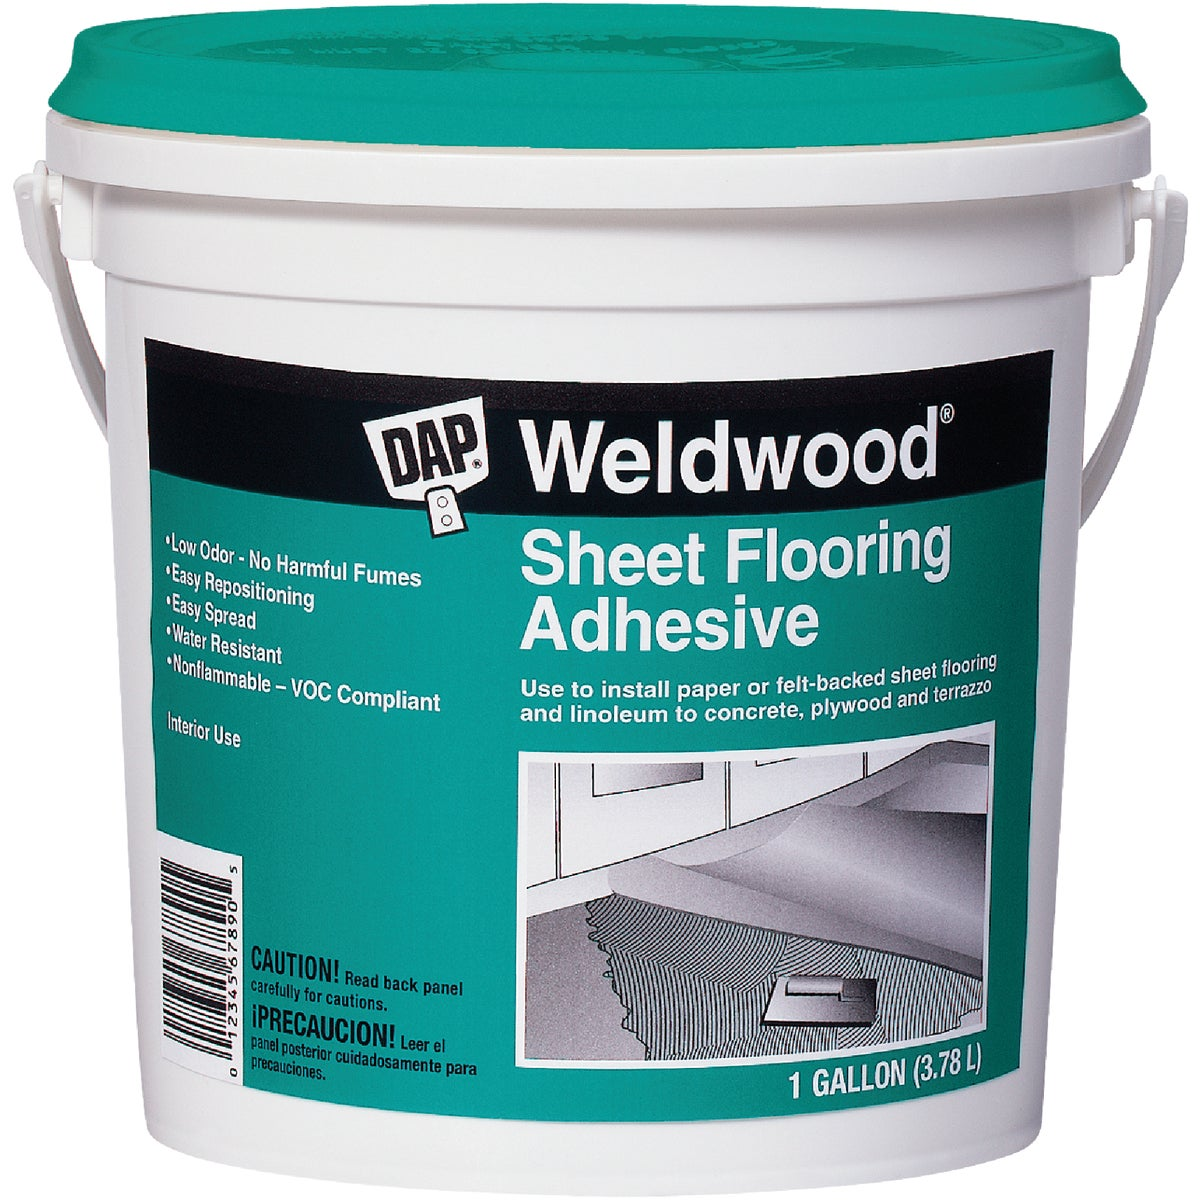 GAL SHEET FLOOR ADHESIVE - 25178 by Dap Inc